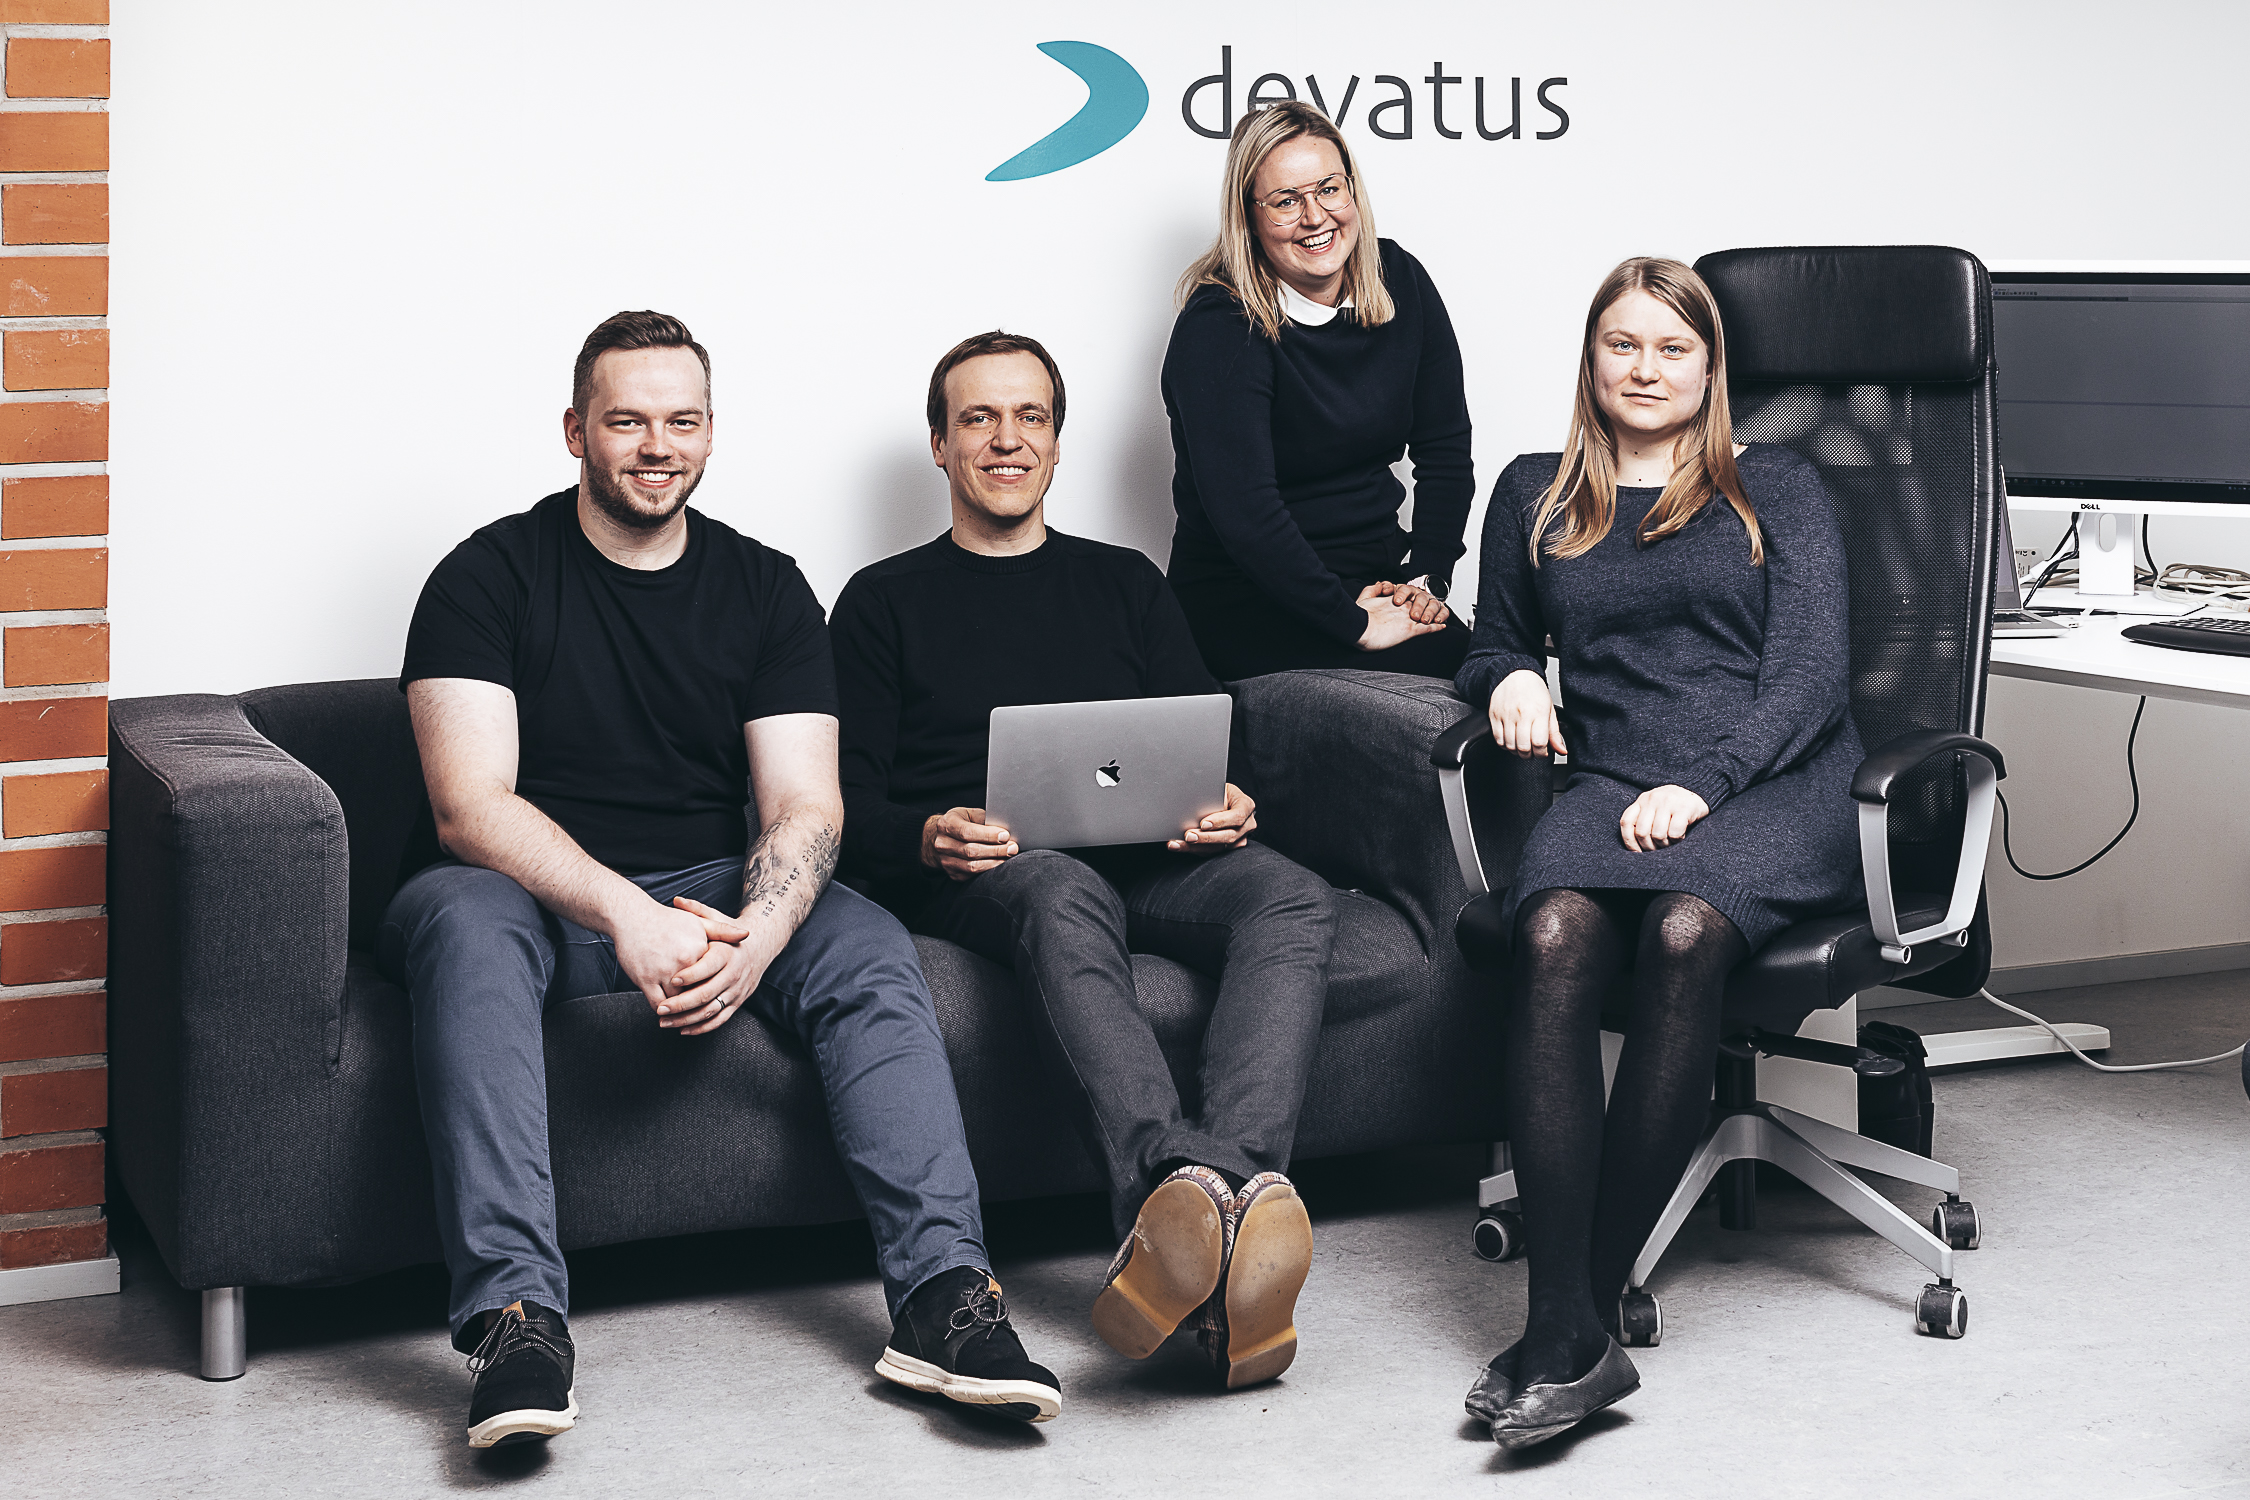 Devatus Pacesetter of the digital world